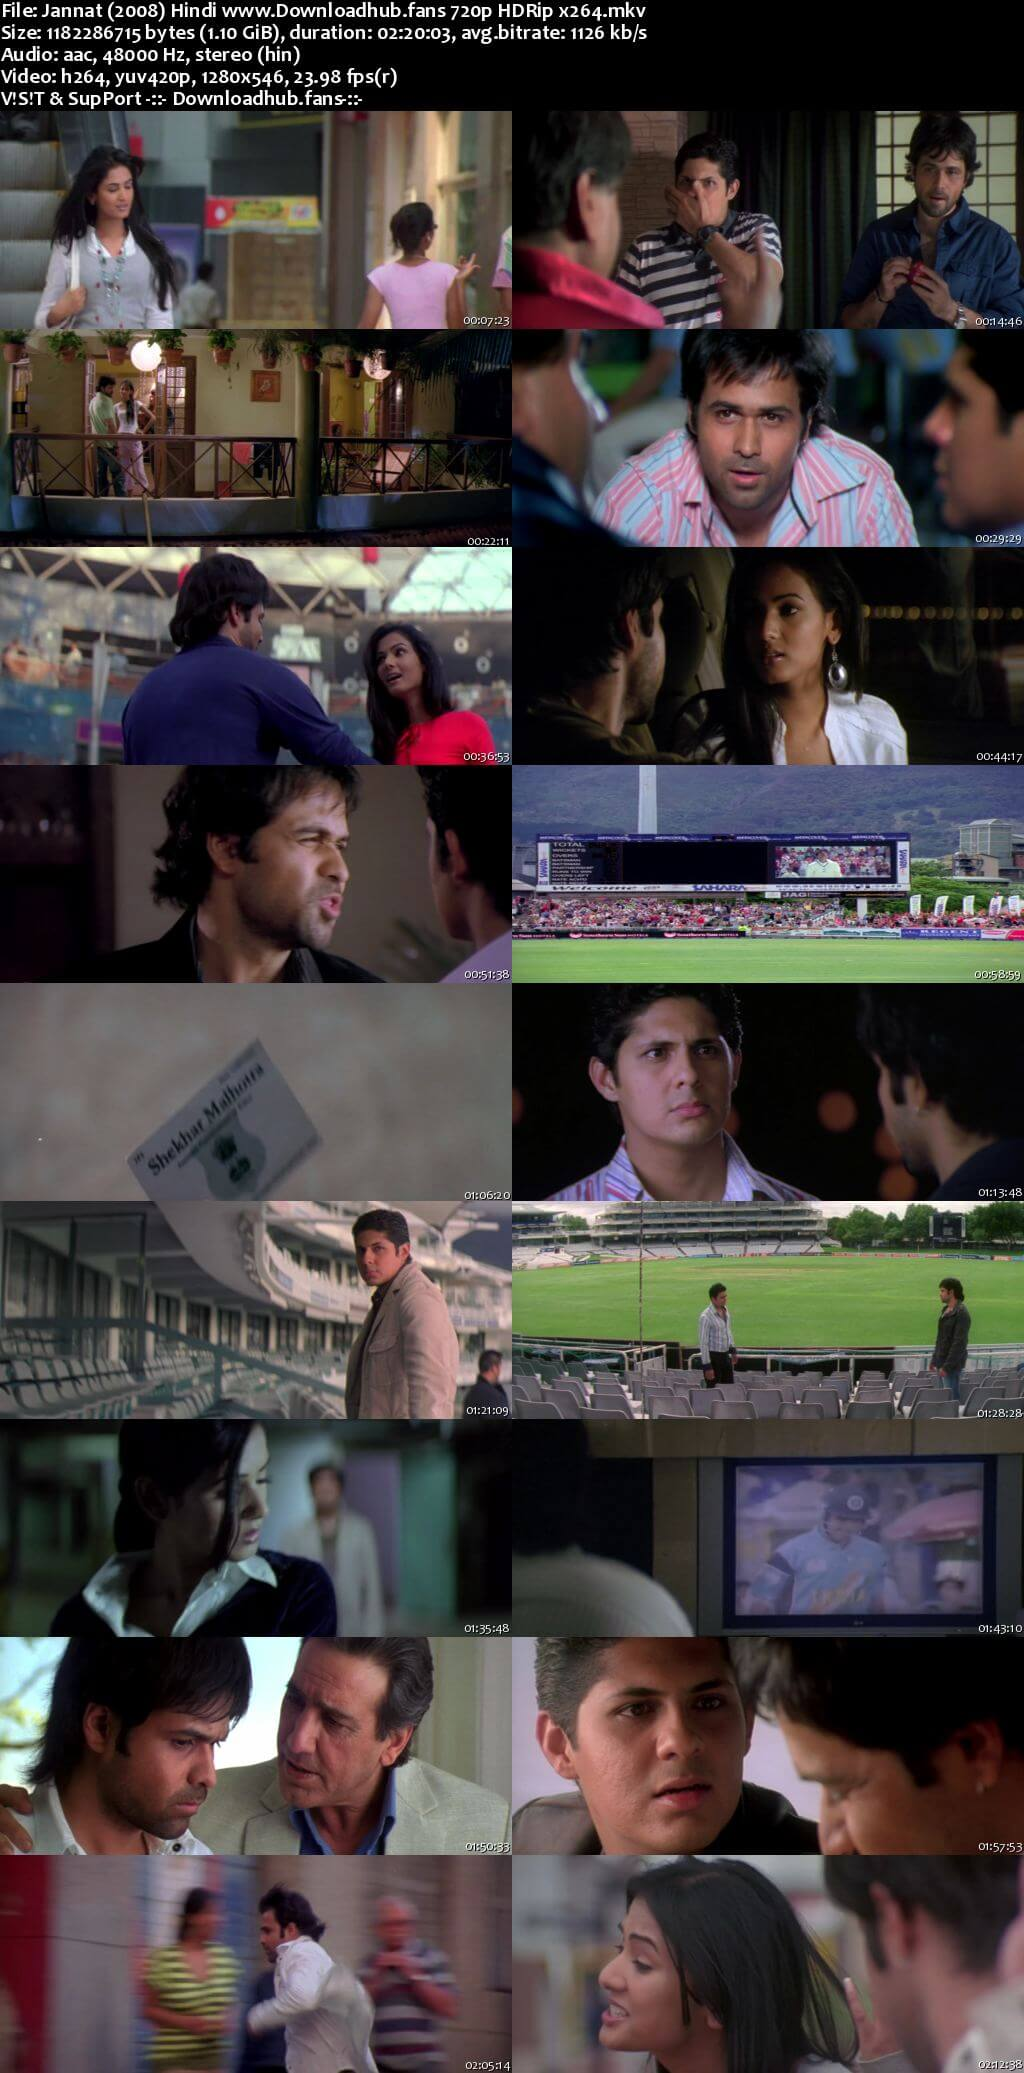 Jannat 2008 Hindi 720p HDRip x264